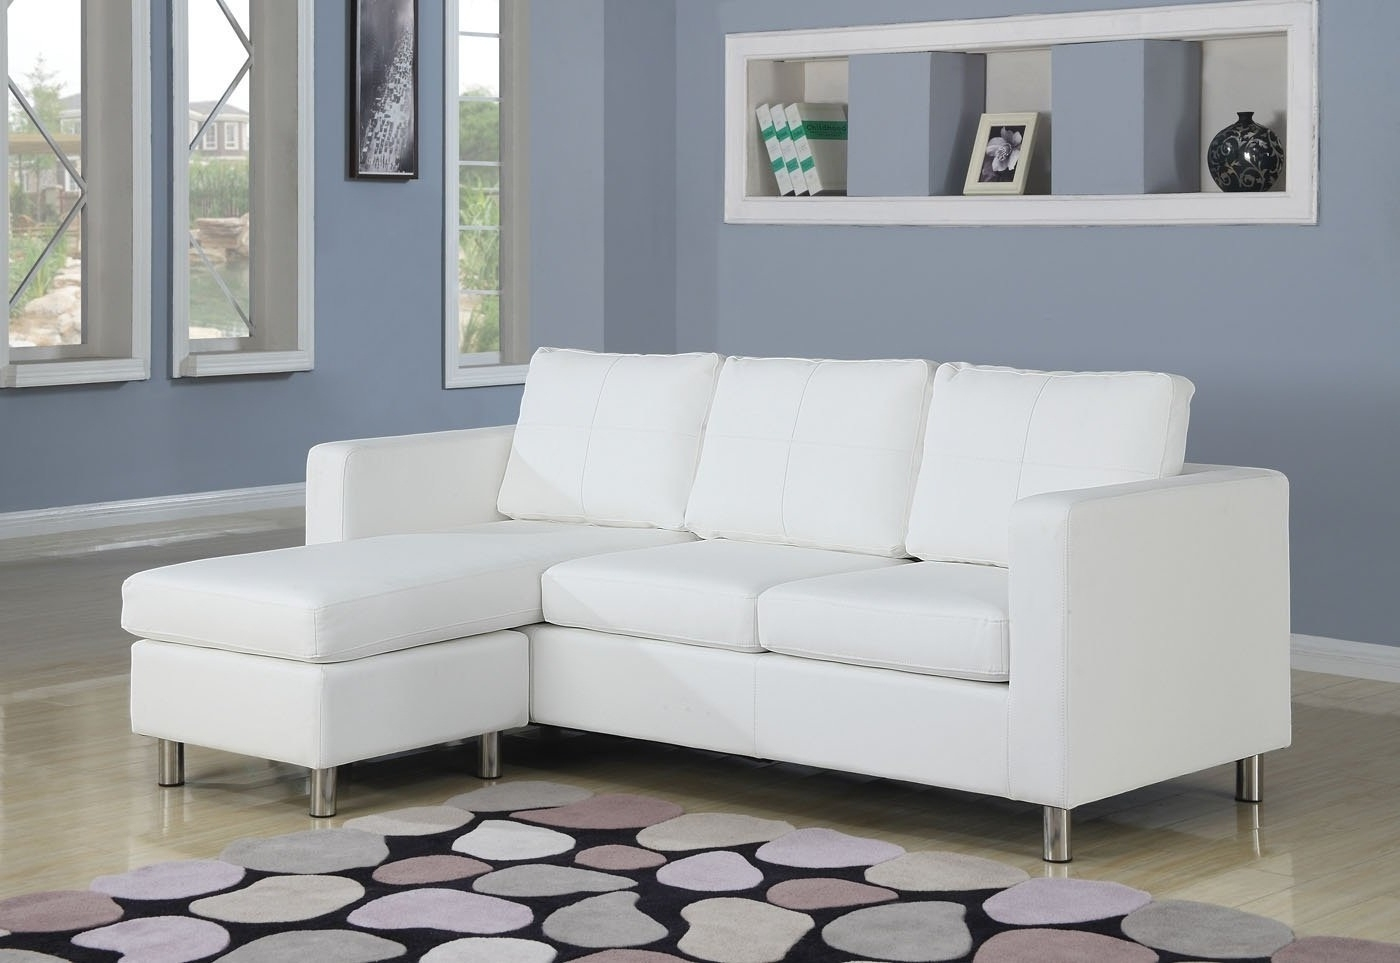 Most Current Sofa : Small Reclining Sectional Sofa Small Double Chaise Sofa Regarding Mini Sectional Sofas (View 13 of 15)